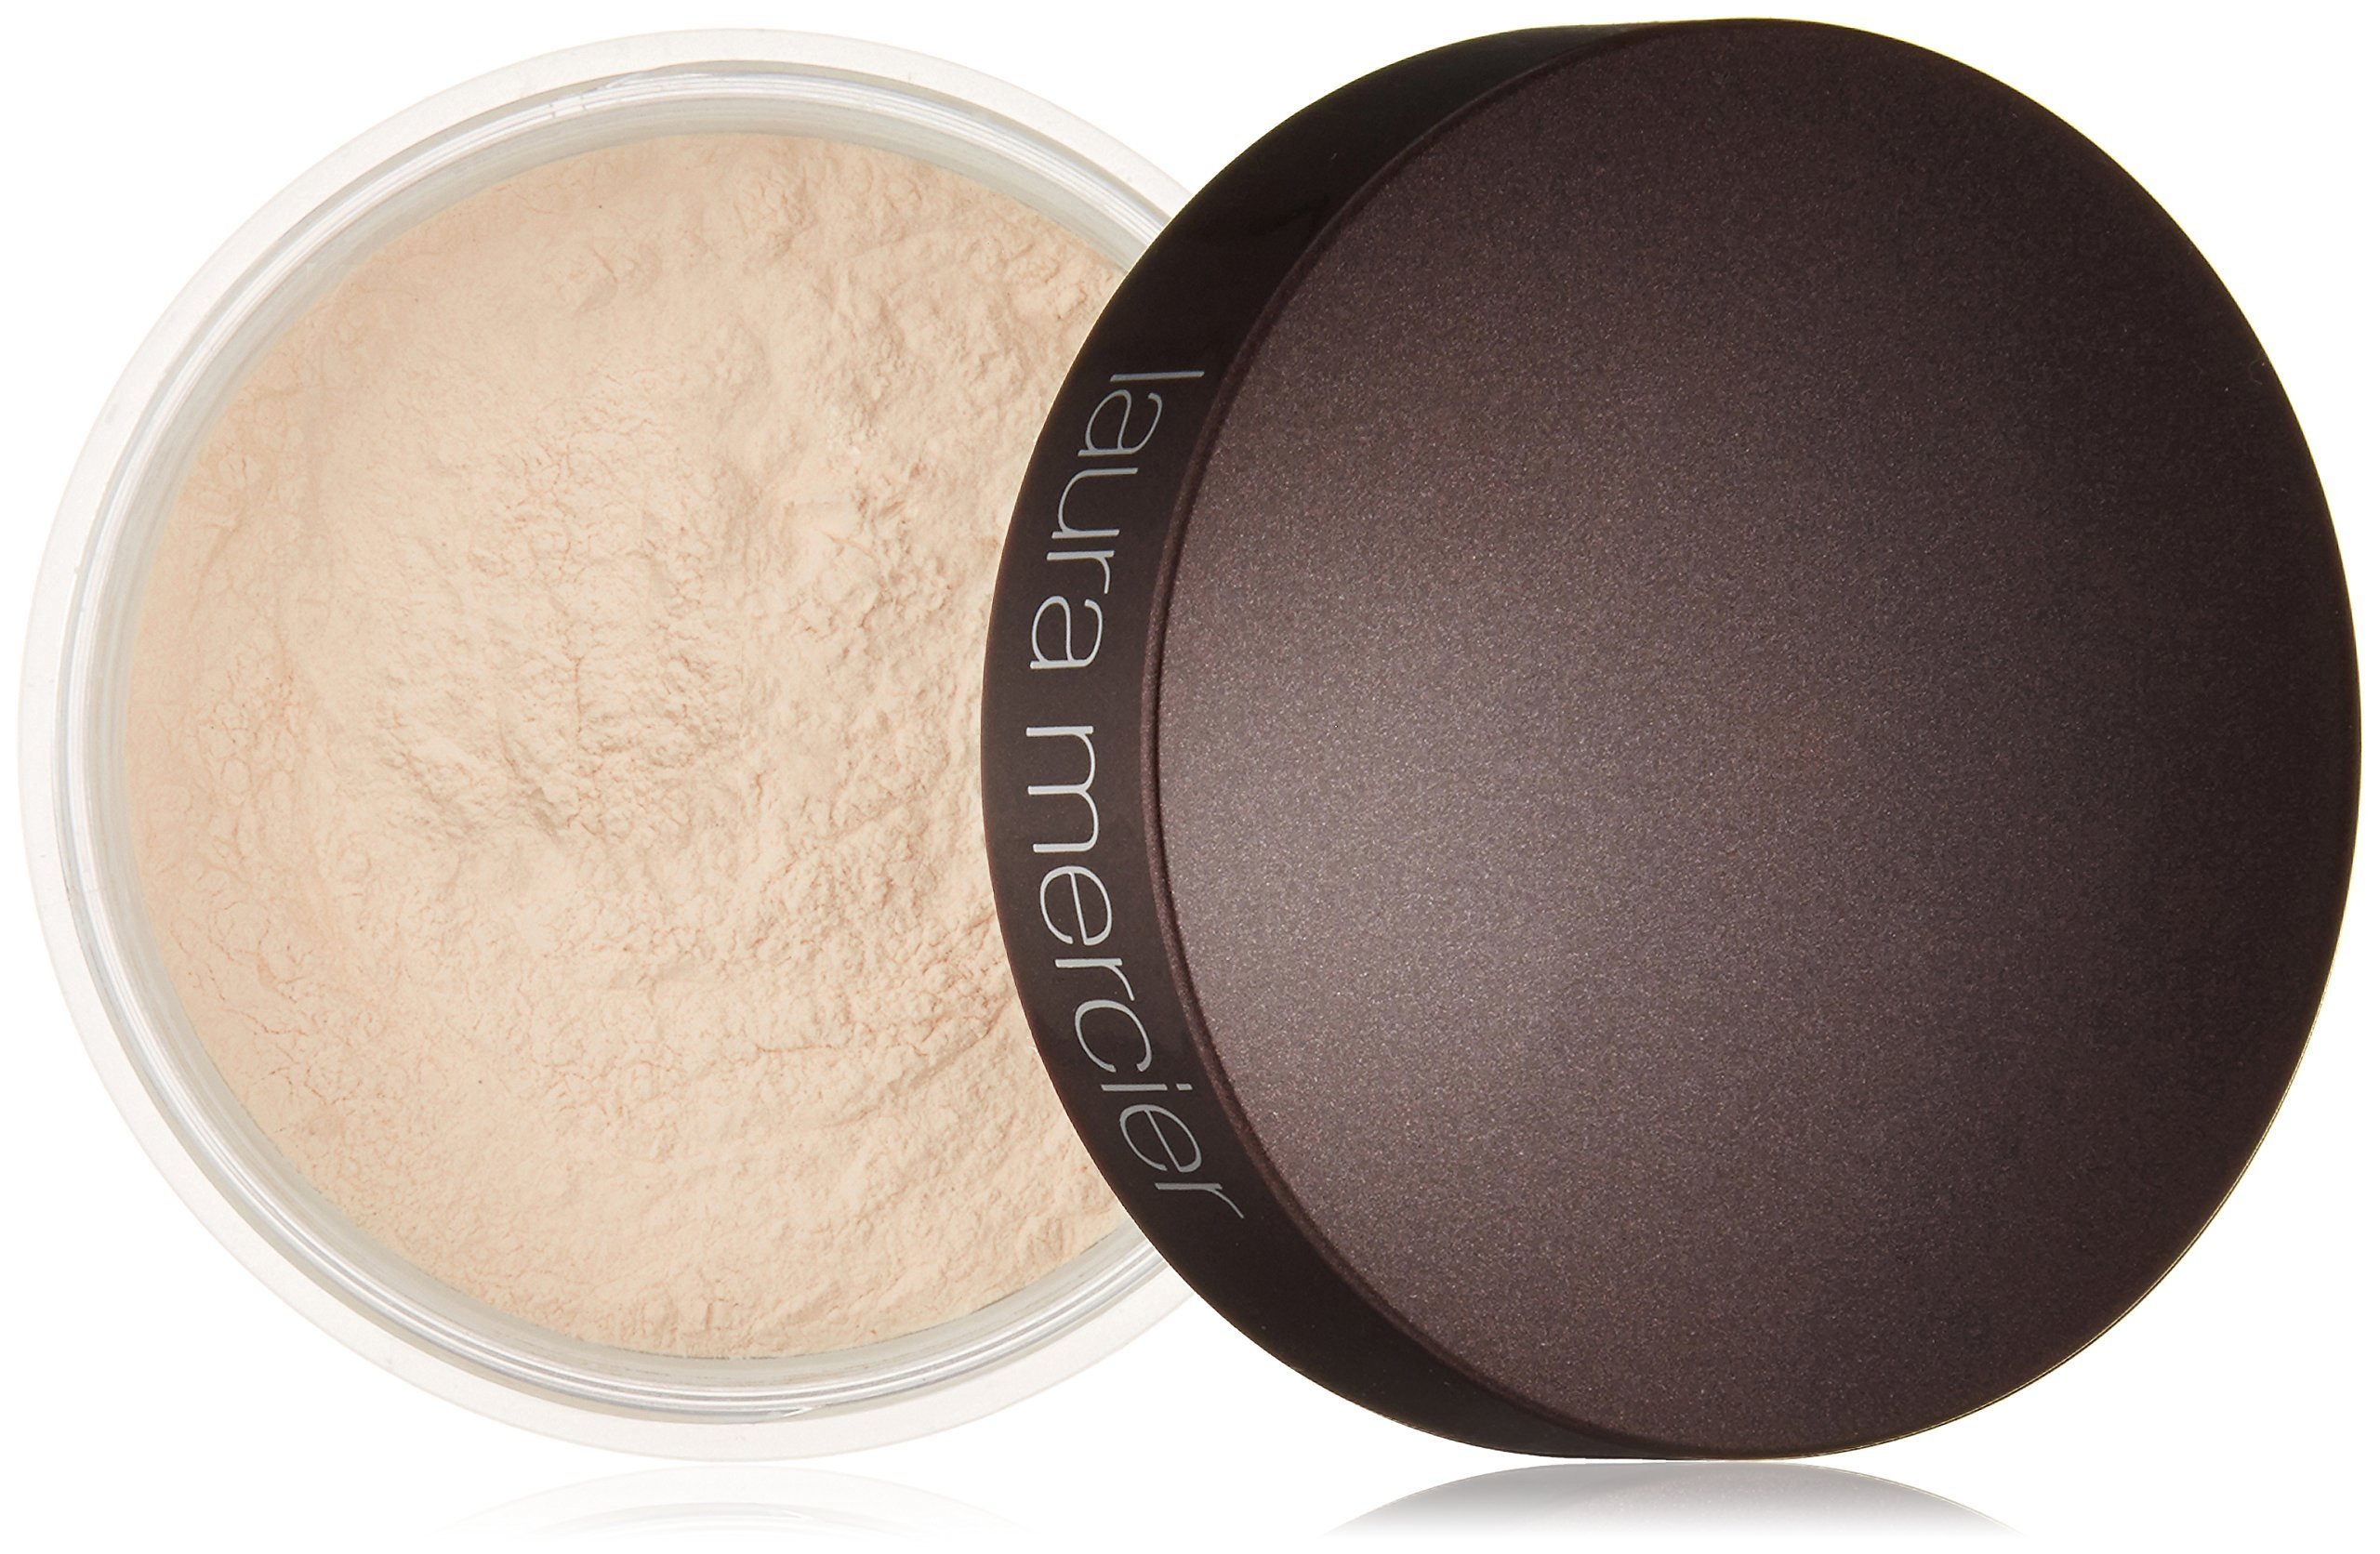 Laura Mercier Loose Setting Powder, Translucent, 1 Ounce